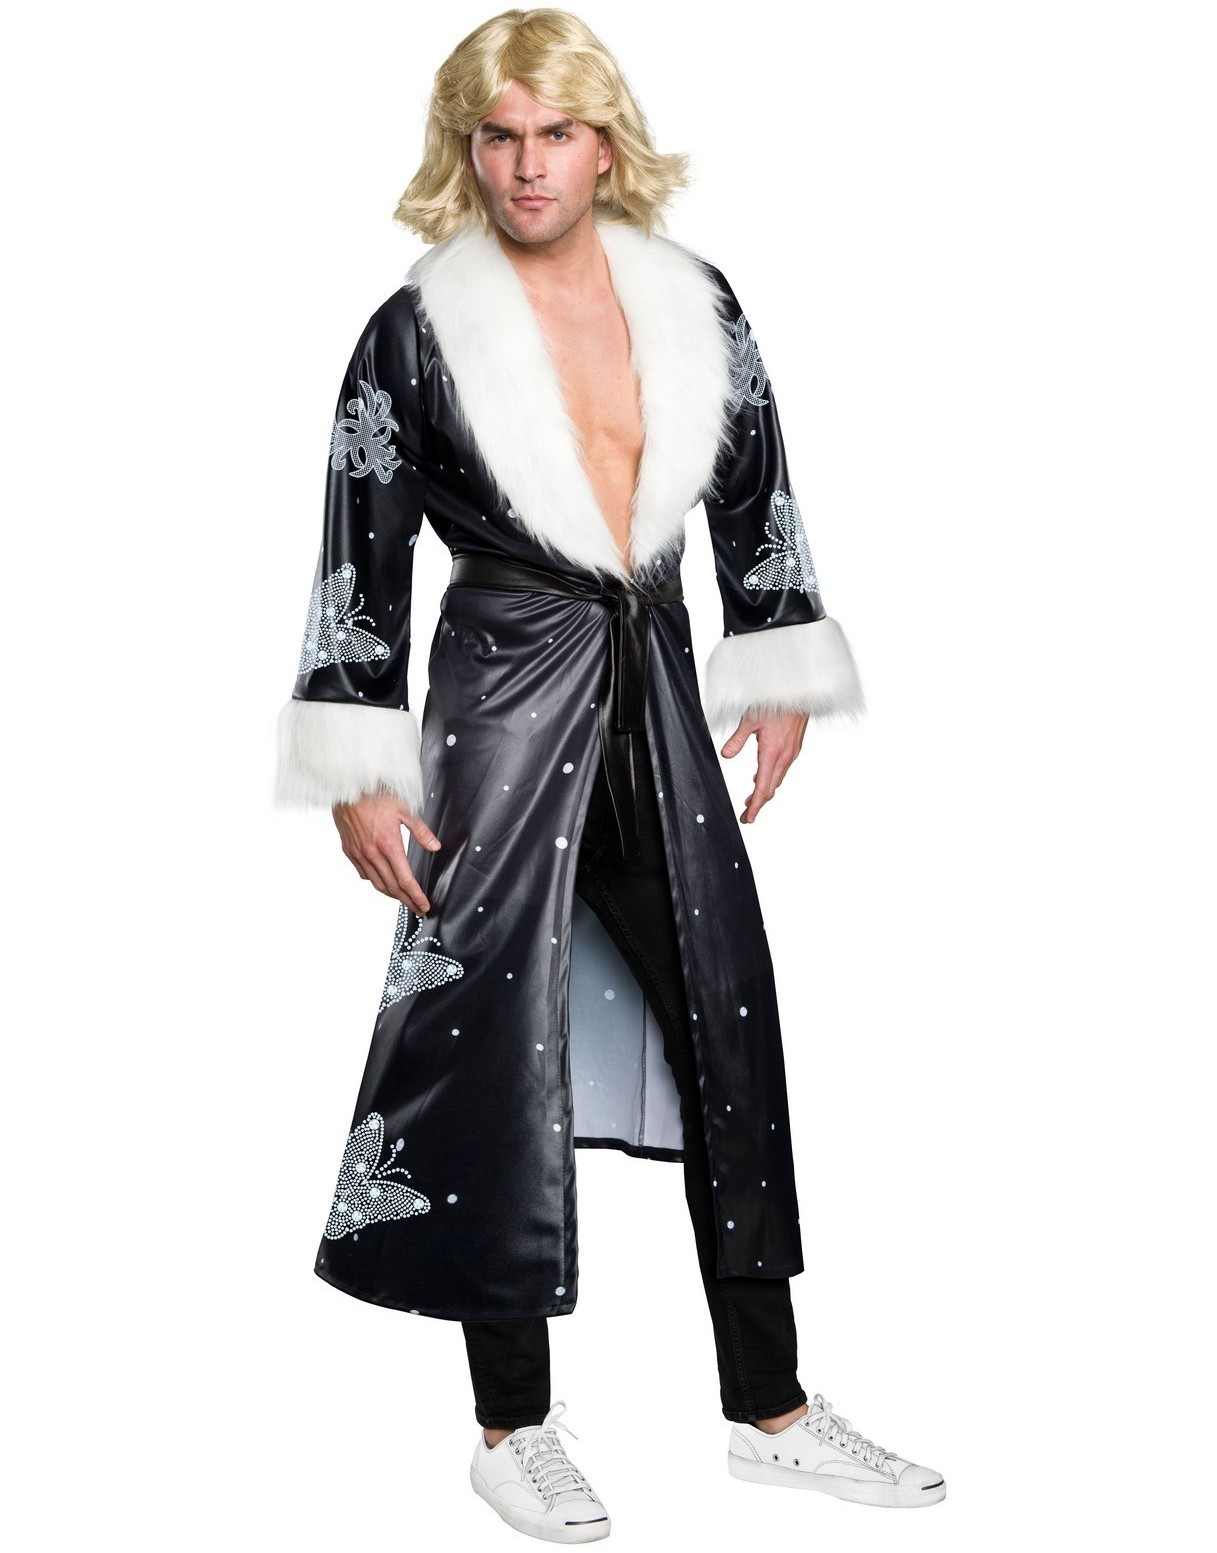 WWE DELUXE NATURE BOY RIC FLAIR COSTUME FOR MEN